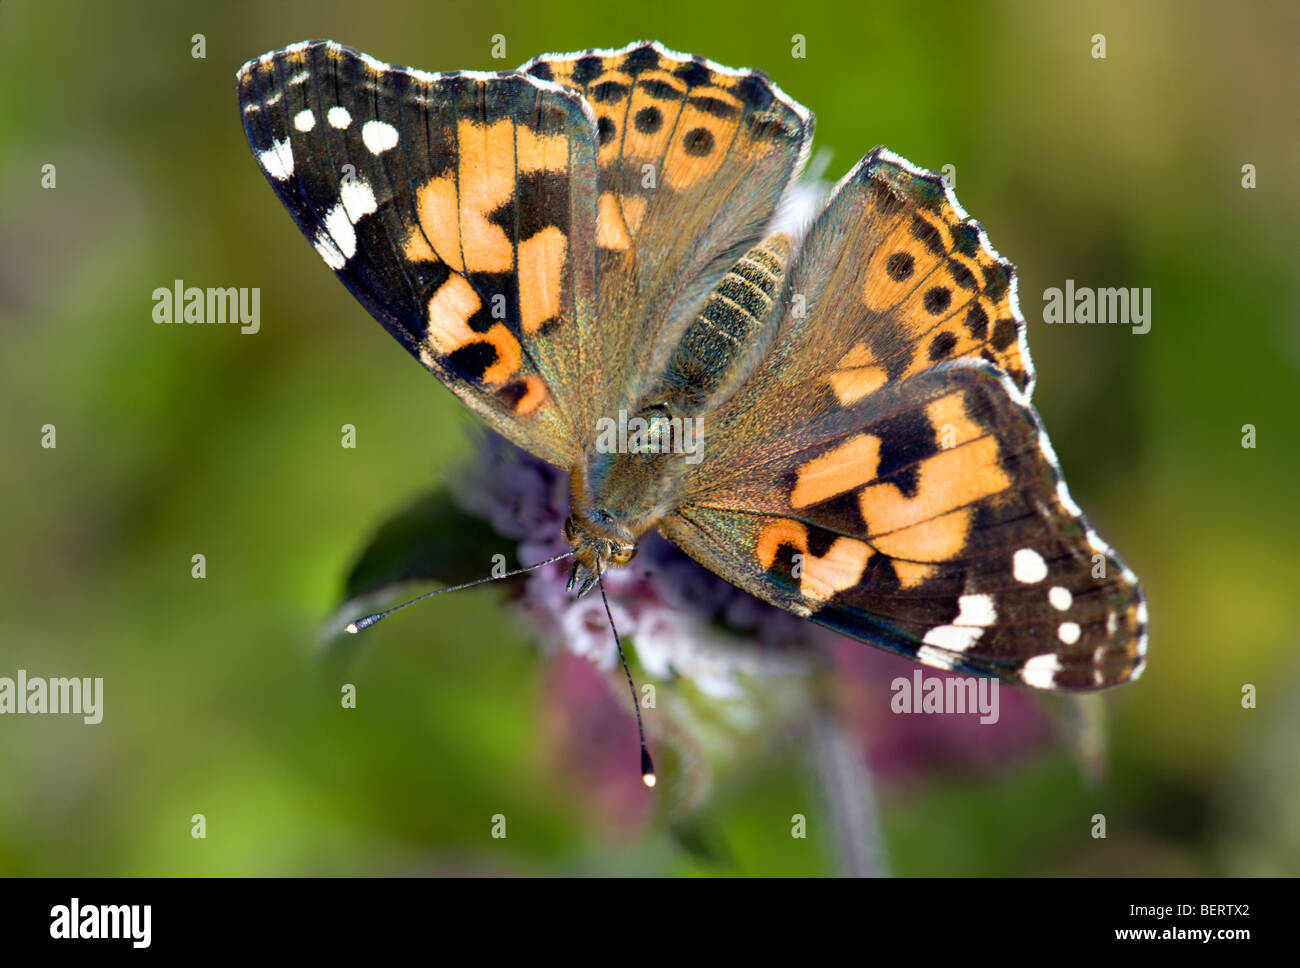 Painted lady butterfly feeding on wild mint plant with wings spread wide open and blurred background - Stock Image